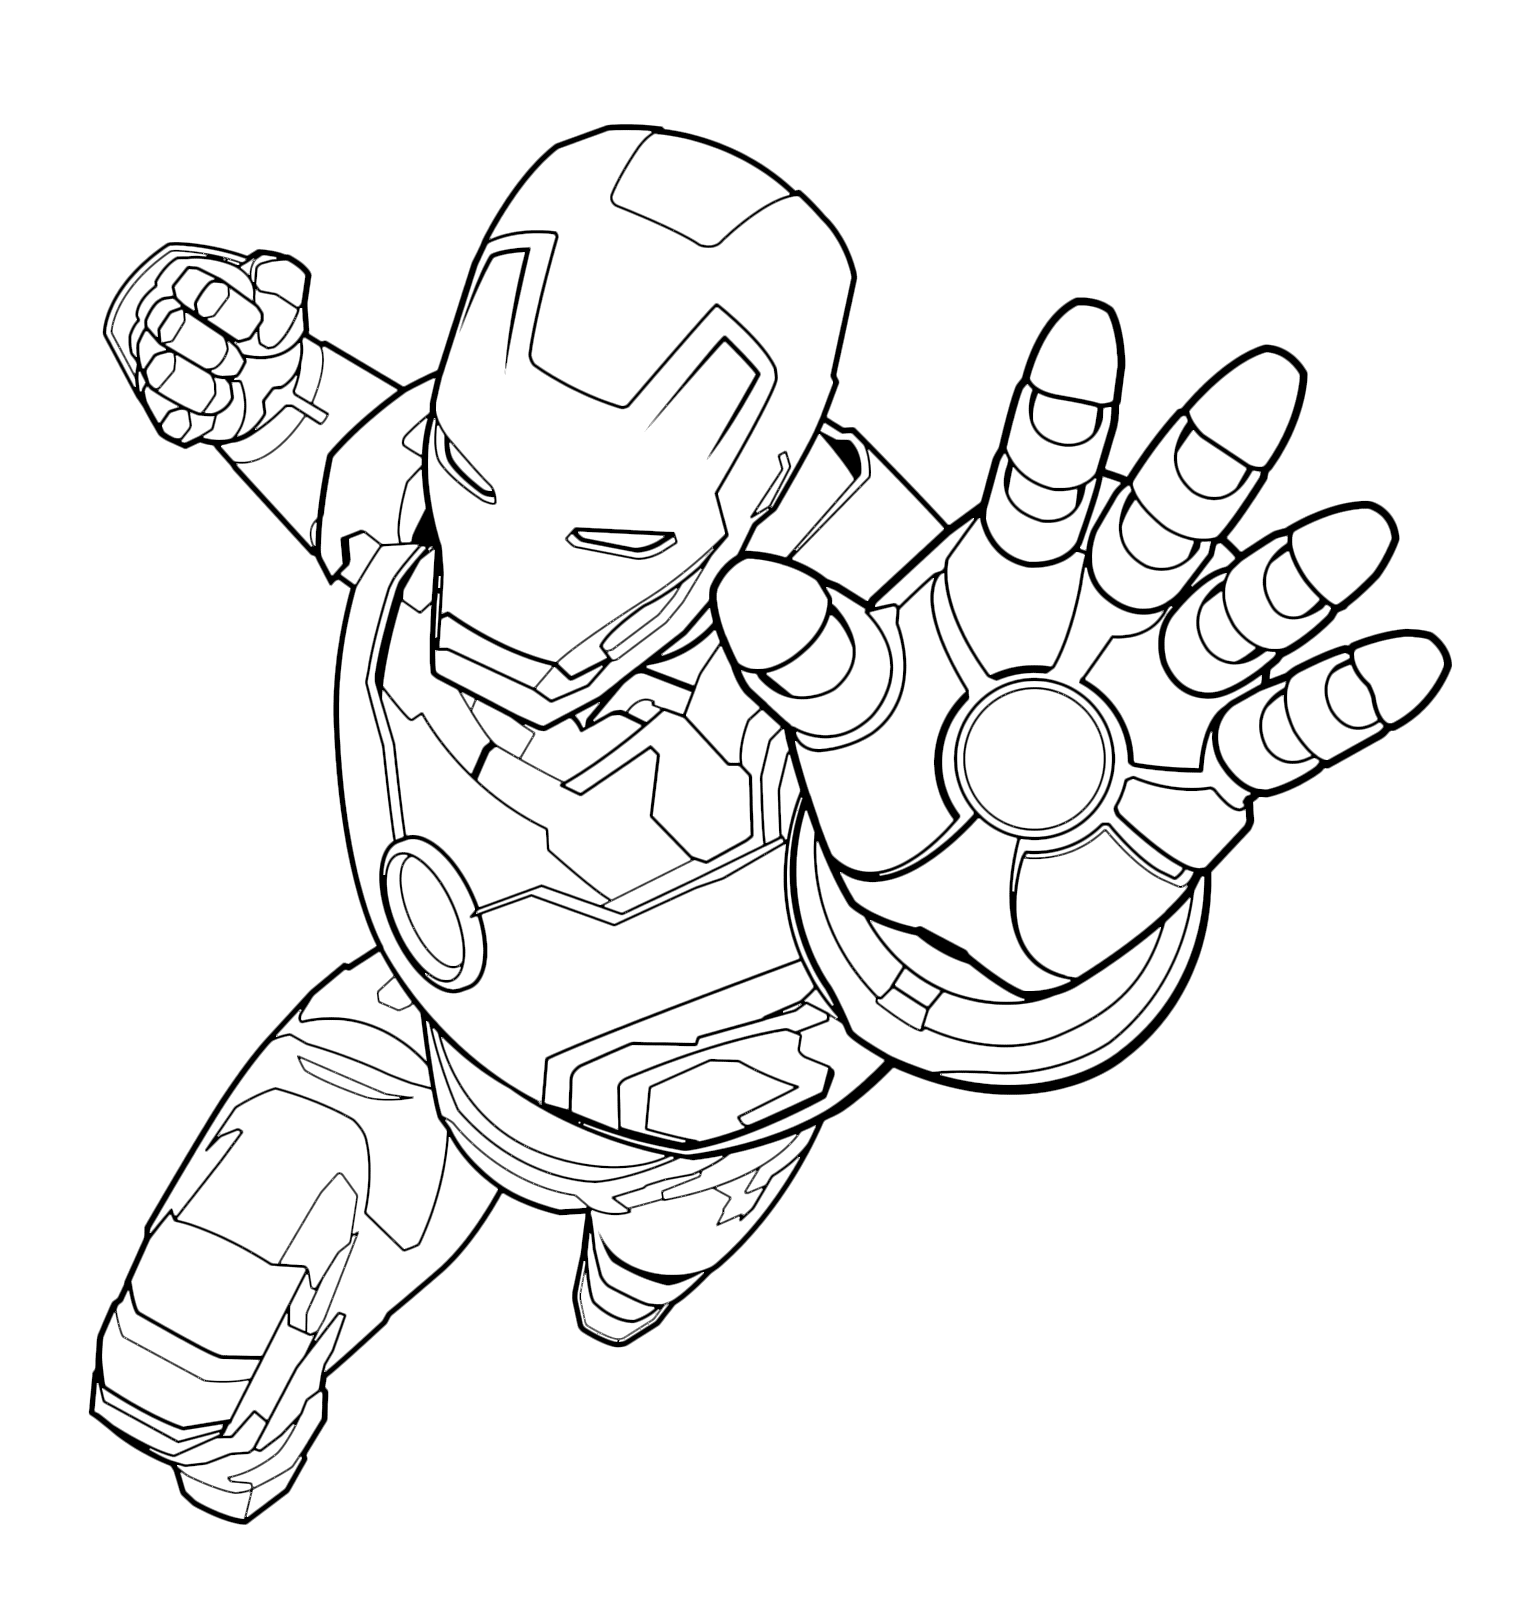 ironman images to color ironman images to color images ironman color to